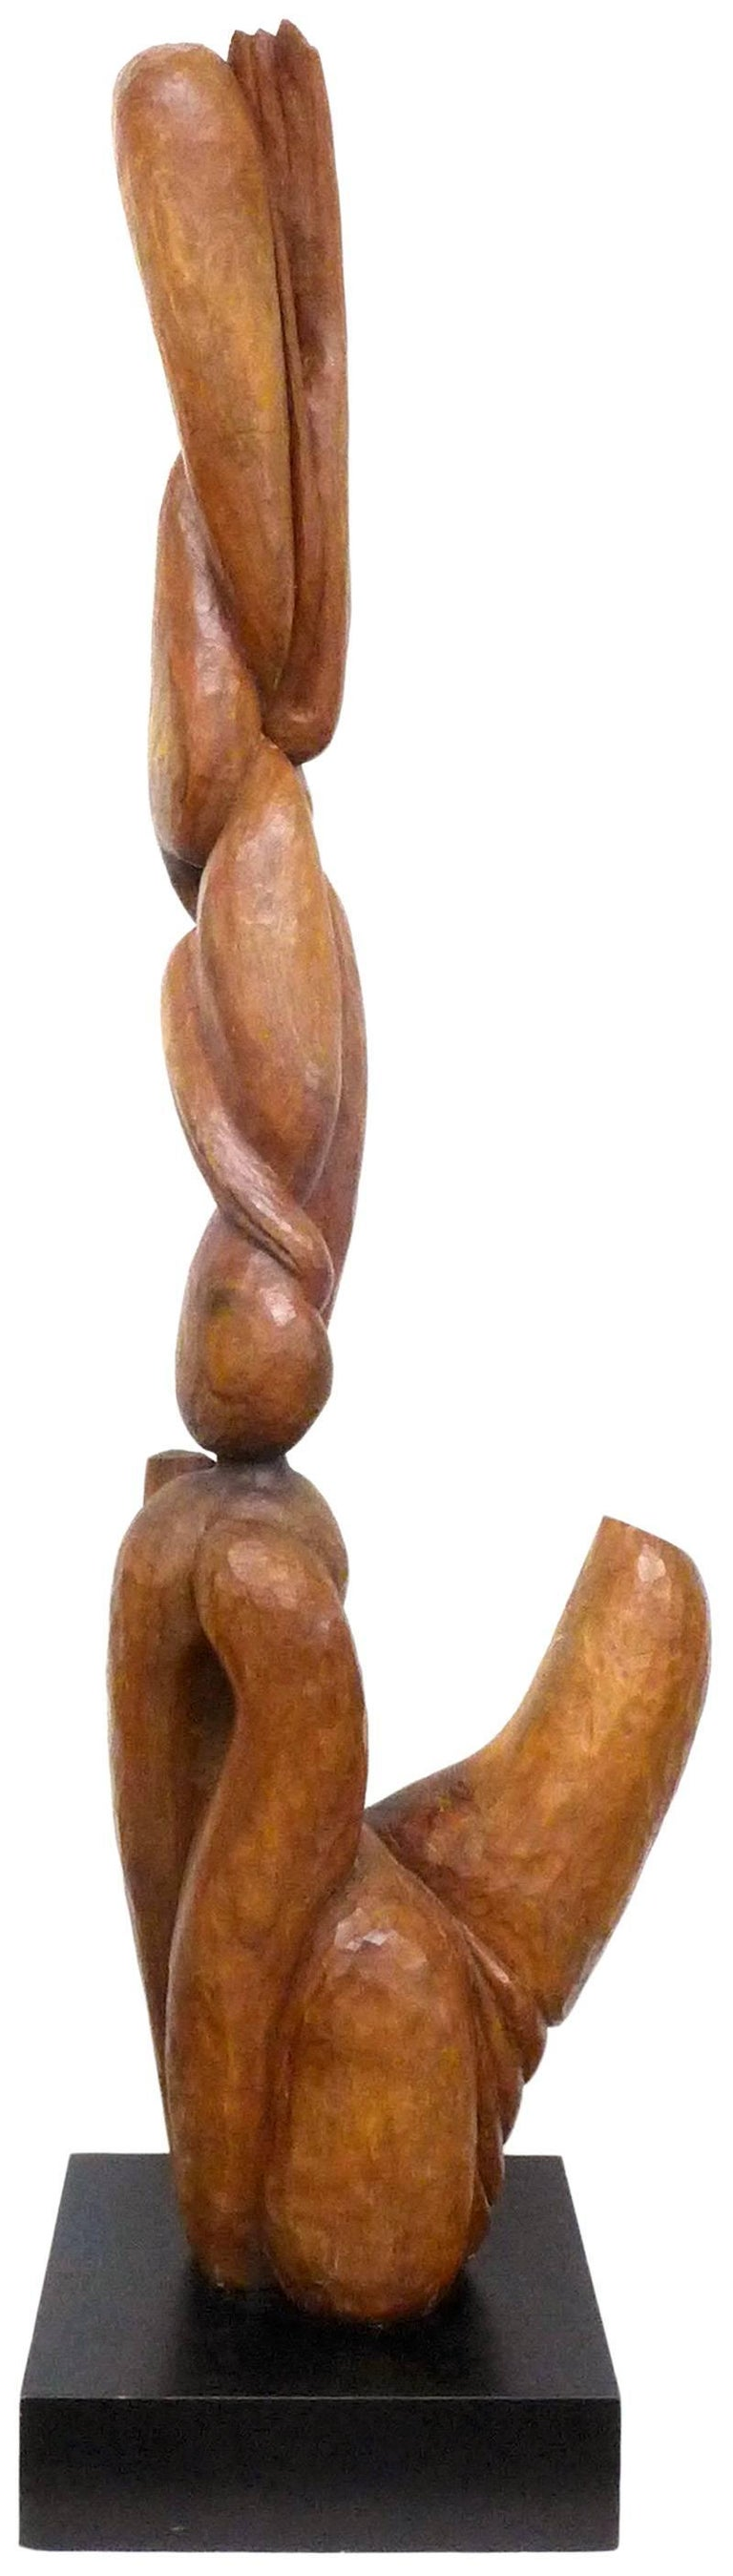 Biomorphic Carved-Wood Sculpture 5